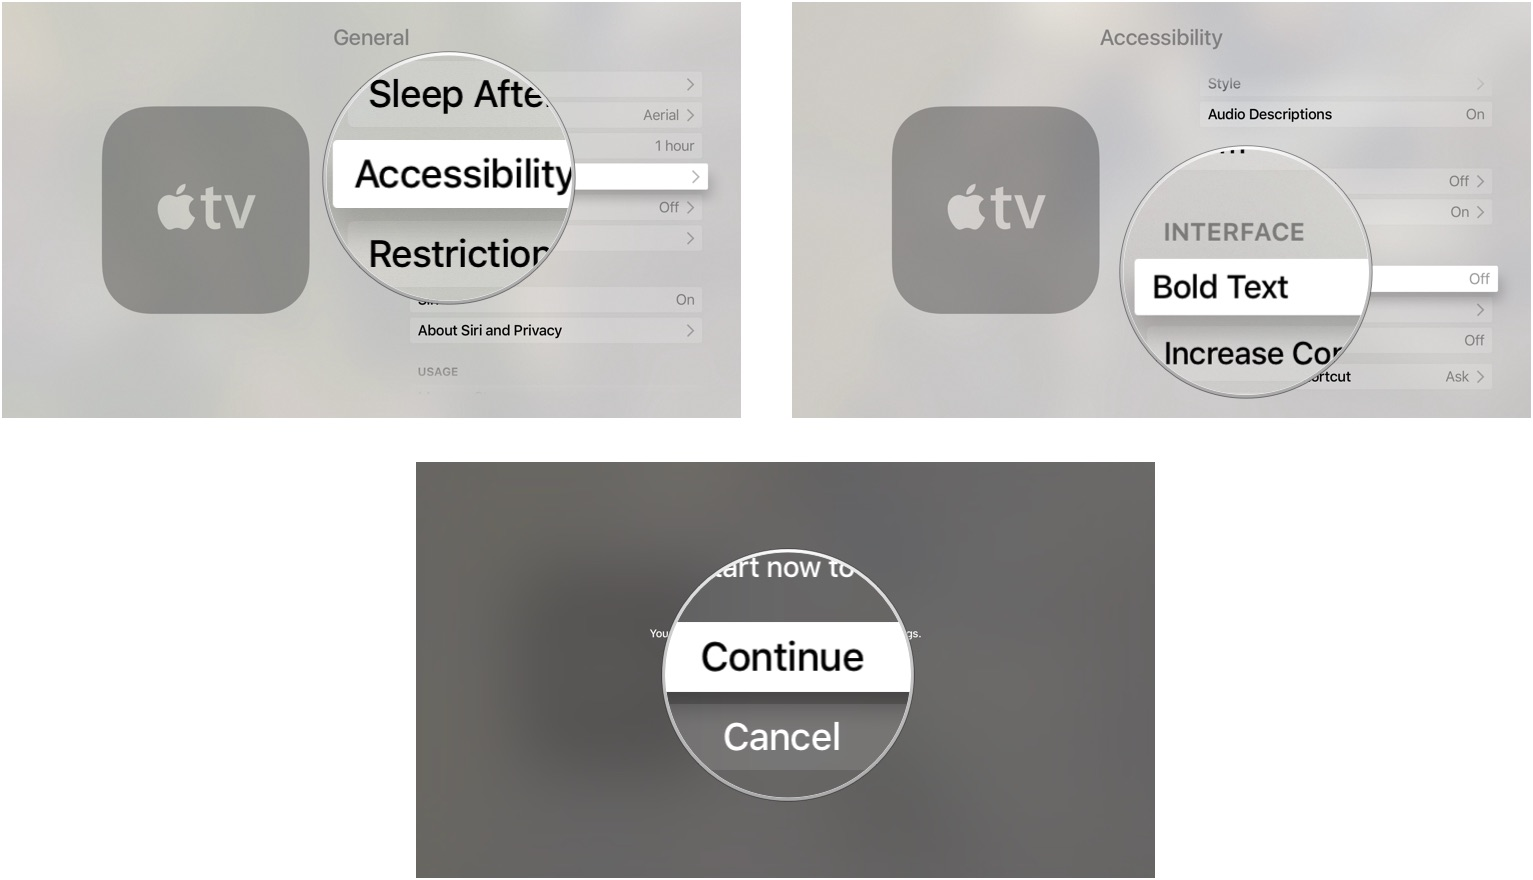 medium resolution of enabling bold text on apple tv